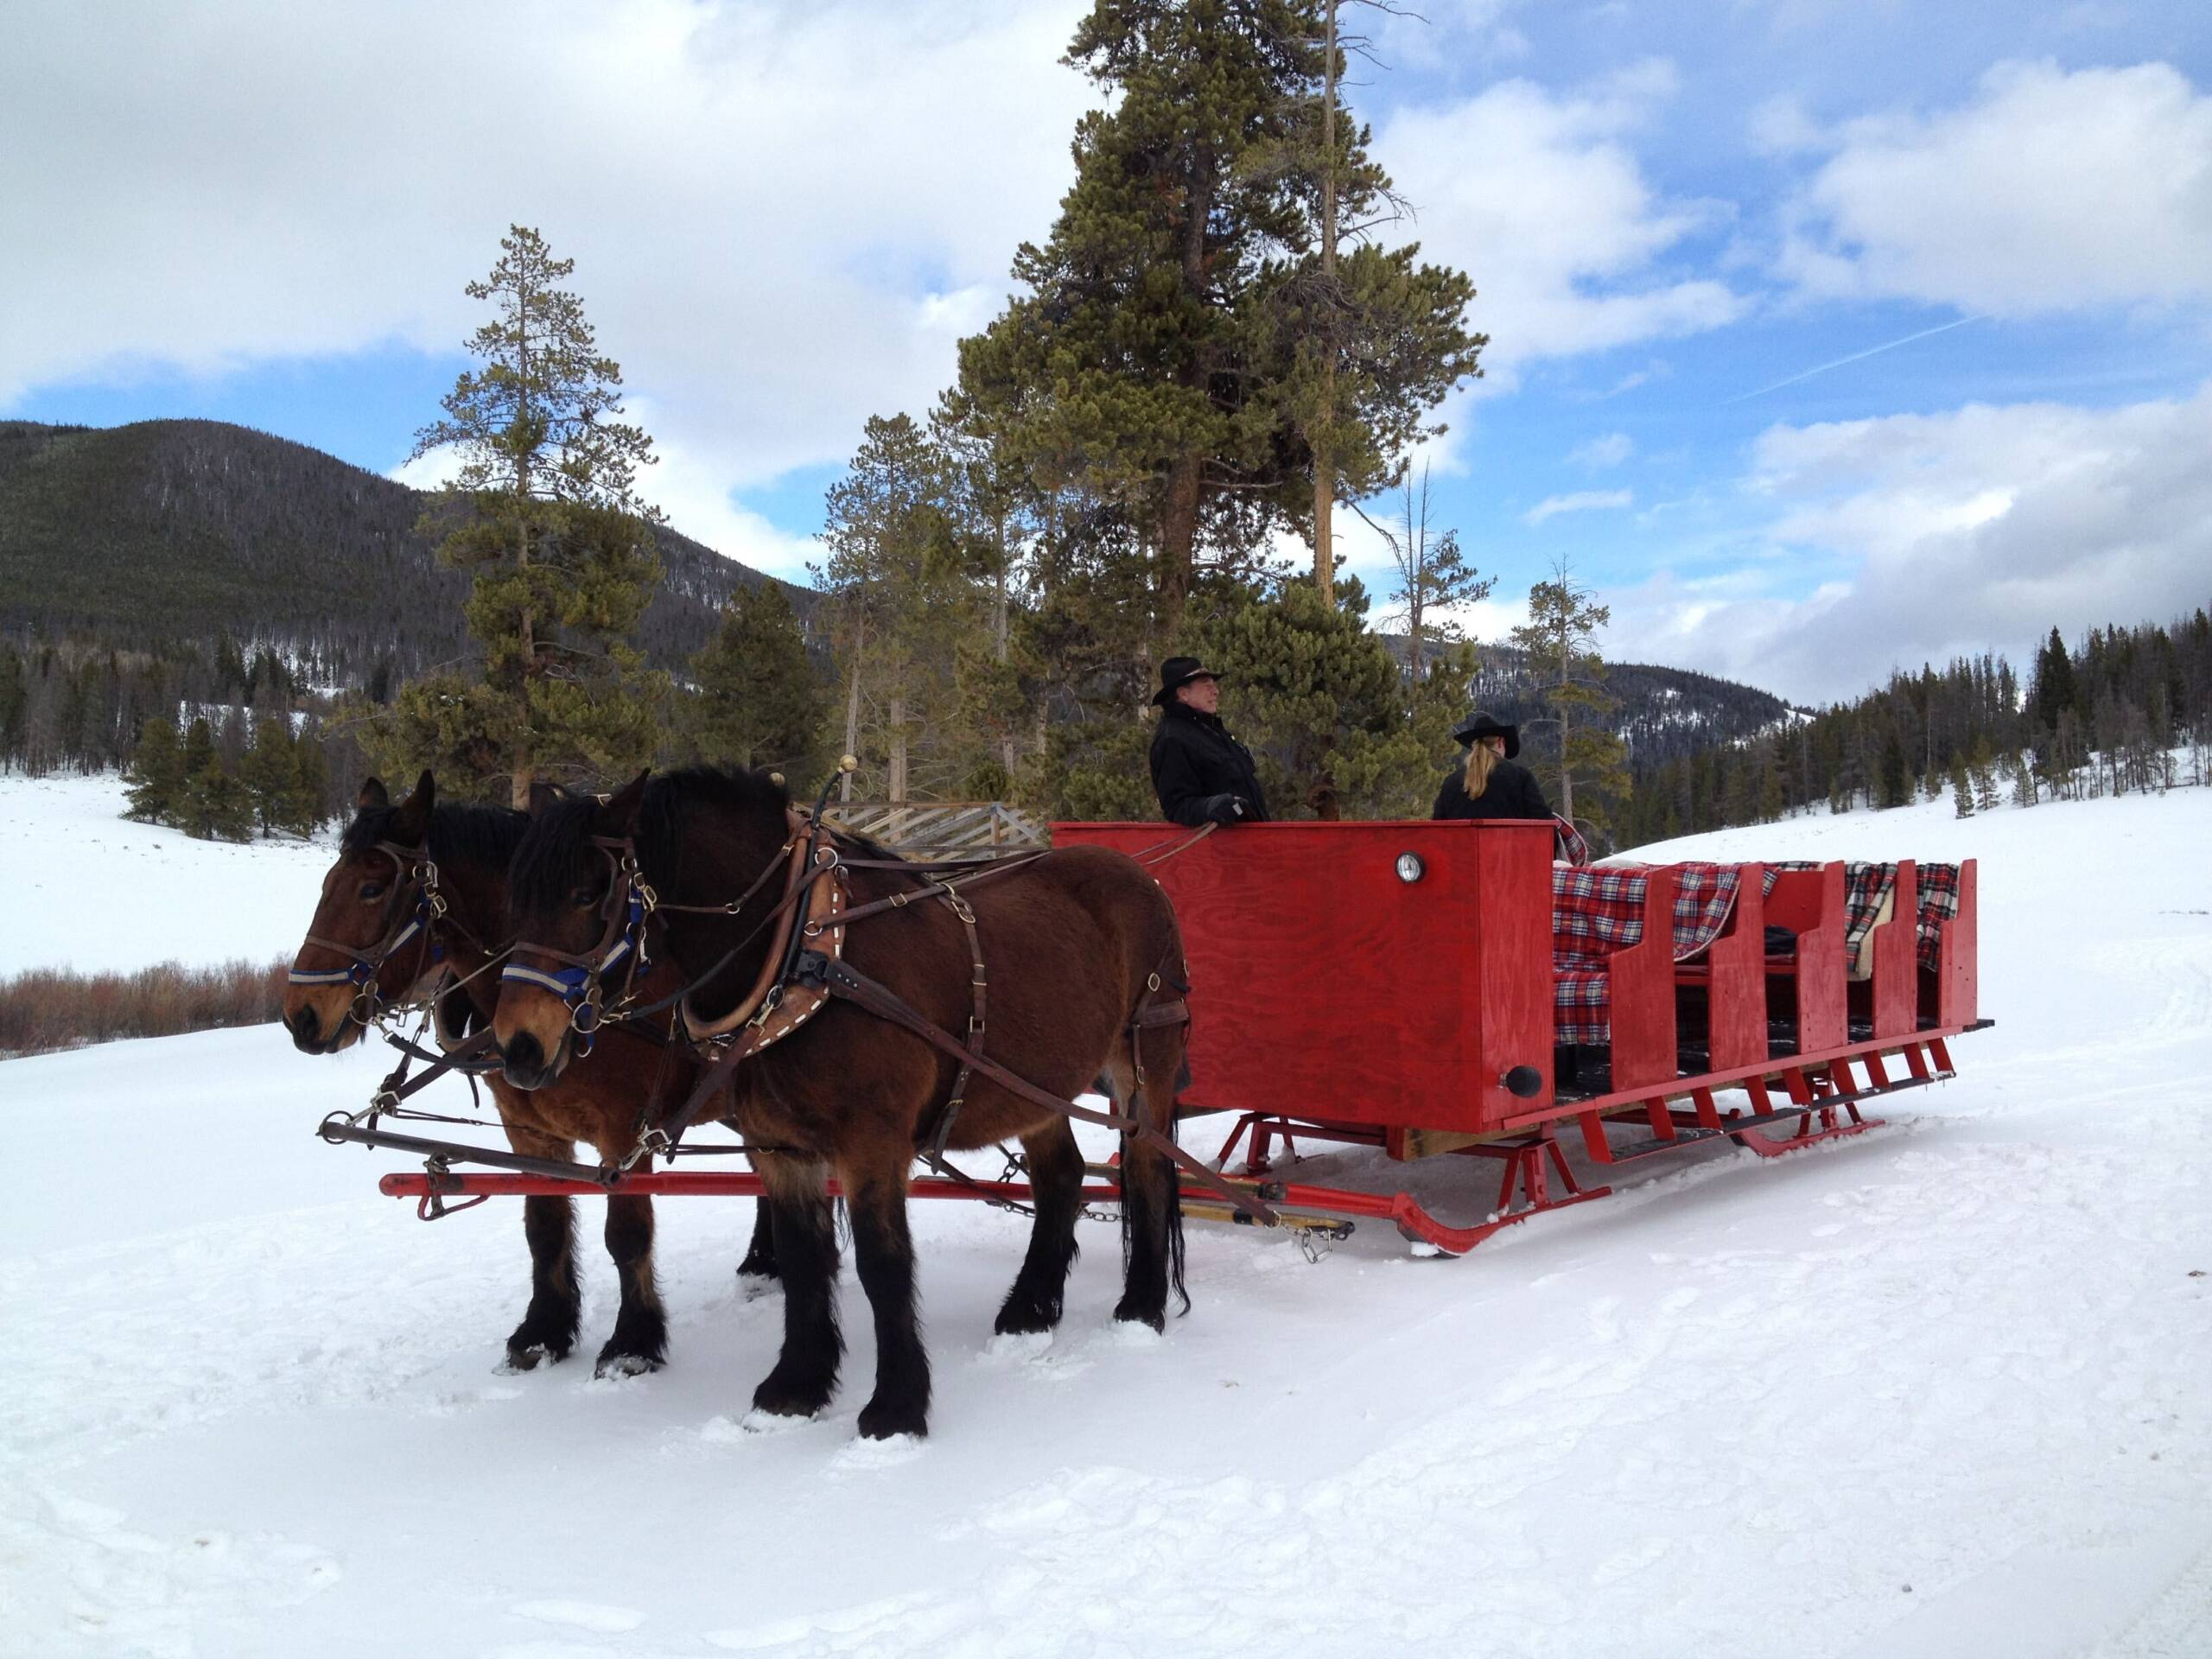 Sleigh ride to dinner at Keystone (Photo by Summer Hull/The Points Guy)